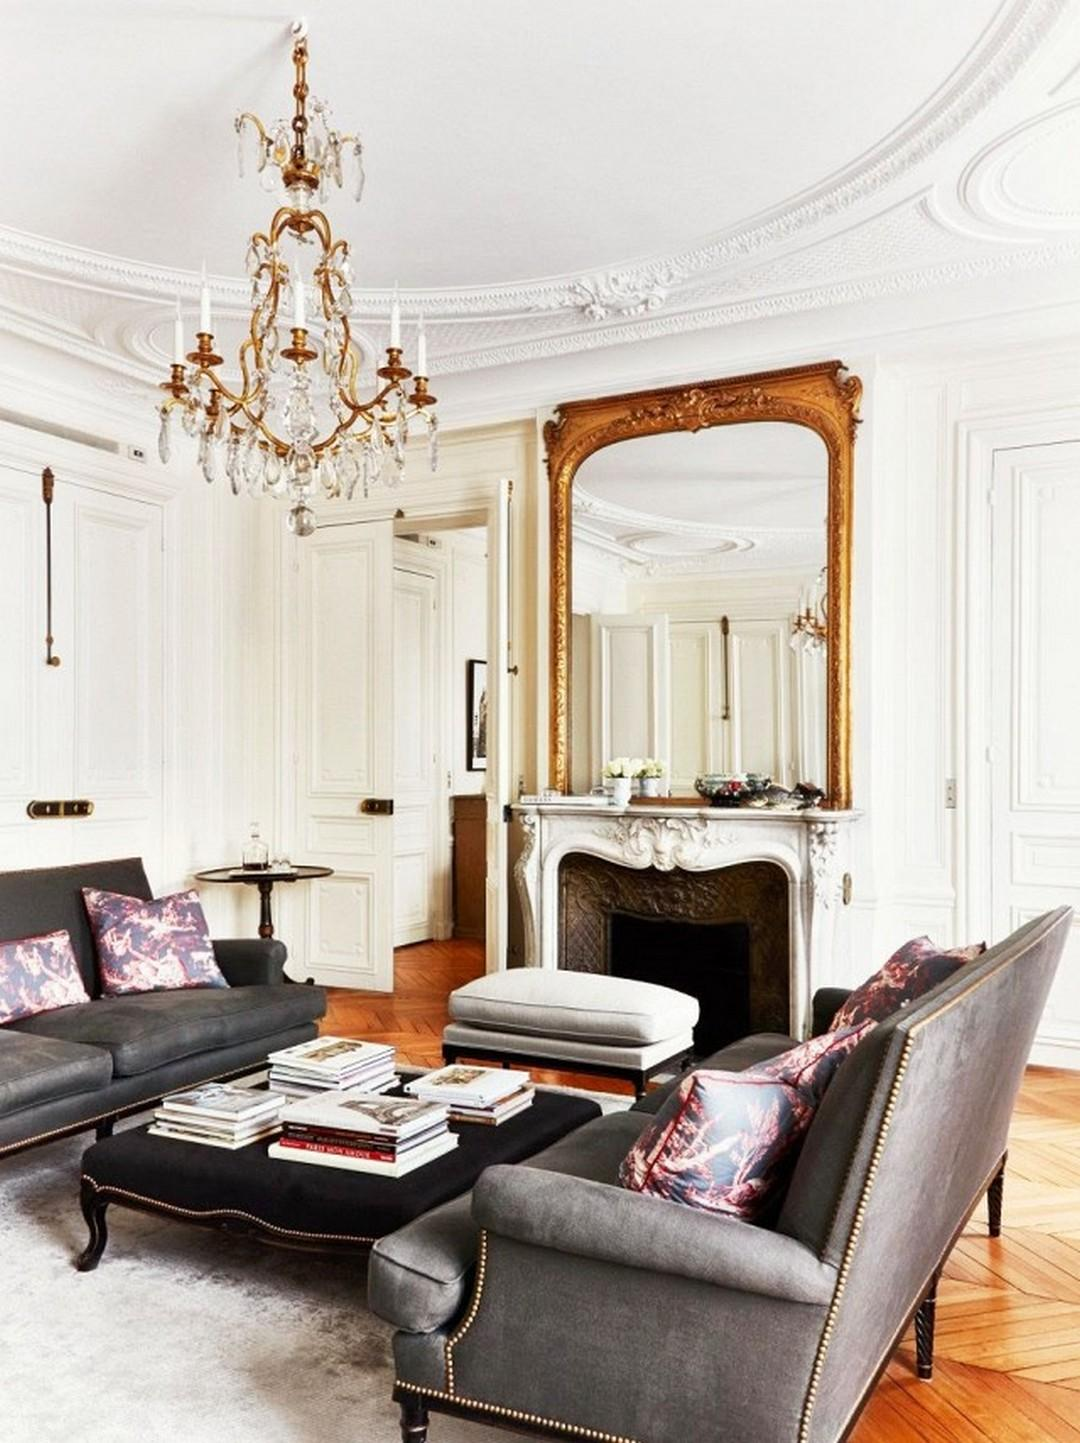 Chic parisian living room with black sofa and crystal chandelier.